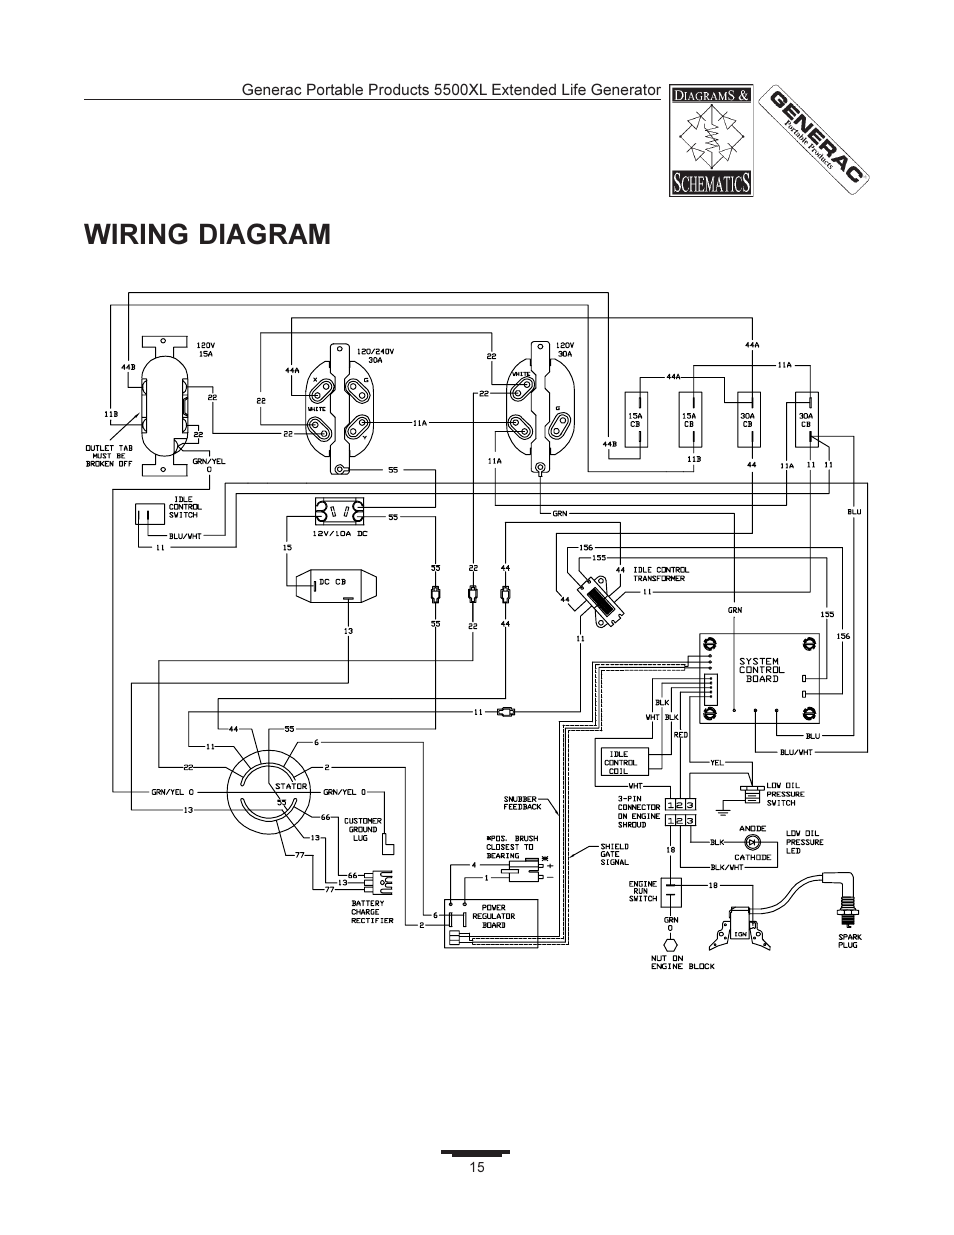 onan 4000 generator wiring diagram honda fourtrax 250 carburetor generac 4000xl power washer ~ elsalvadorla